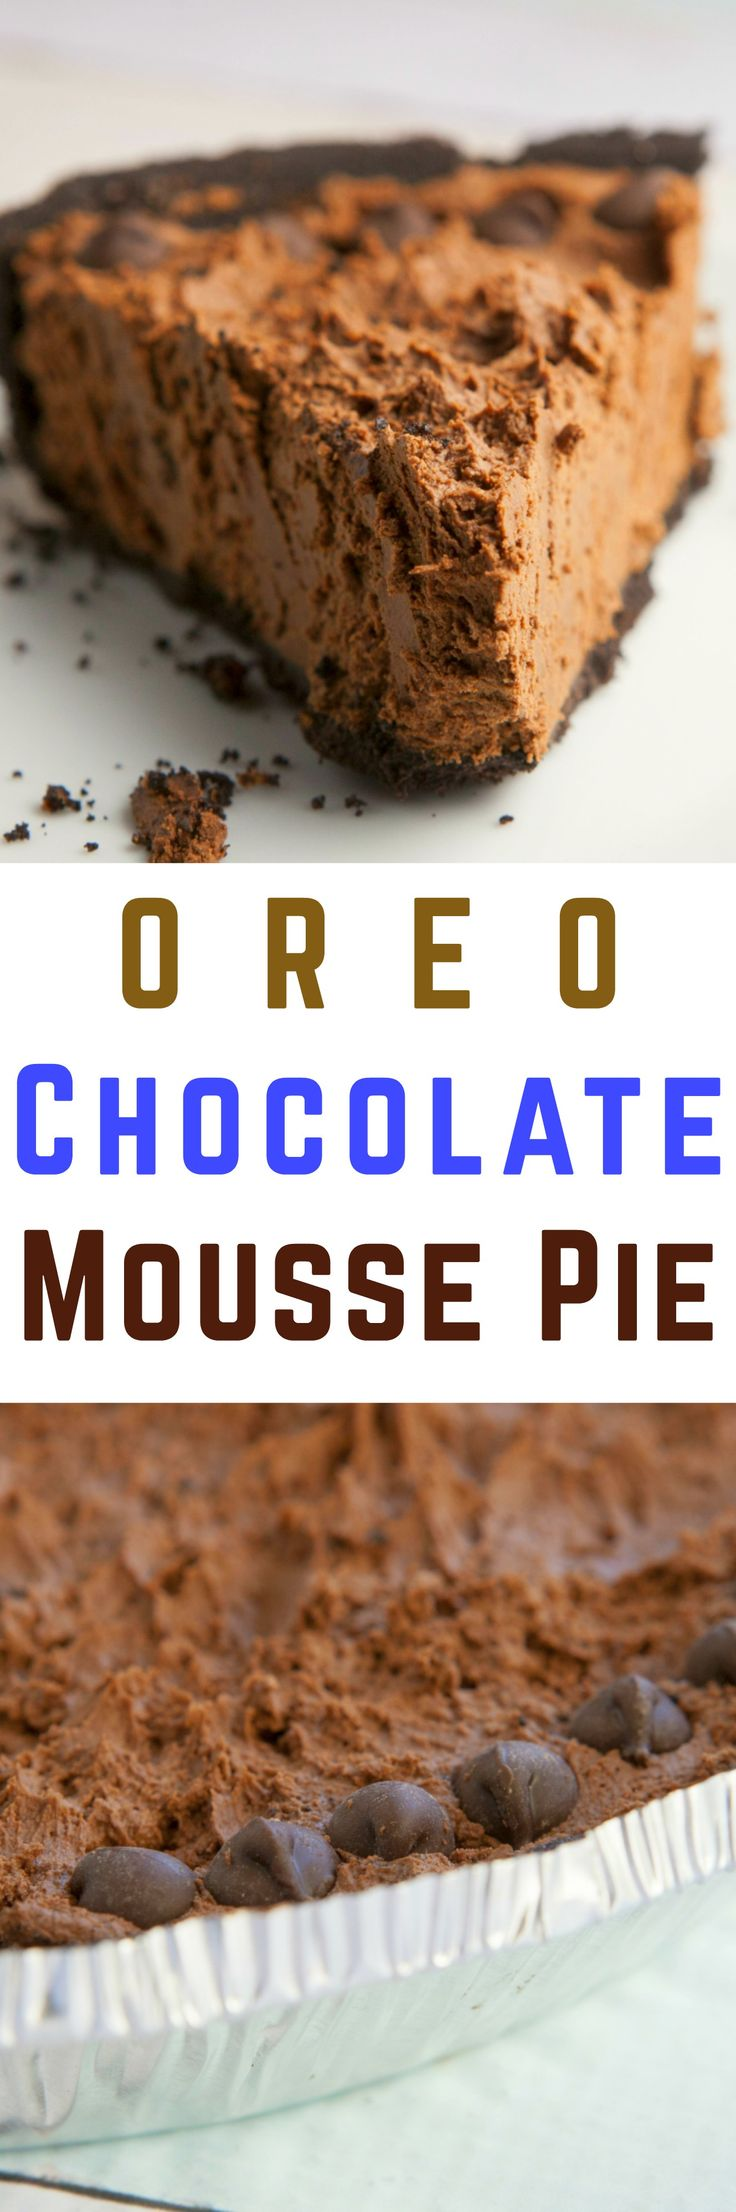 "Enjoy the recipe for this ""I've Been a Bad Girl"" Oreo Chocolate Mousse Pie. This is a rich double chocolate pie, perfect for chocolate lovers, with a Oreo crust."